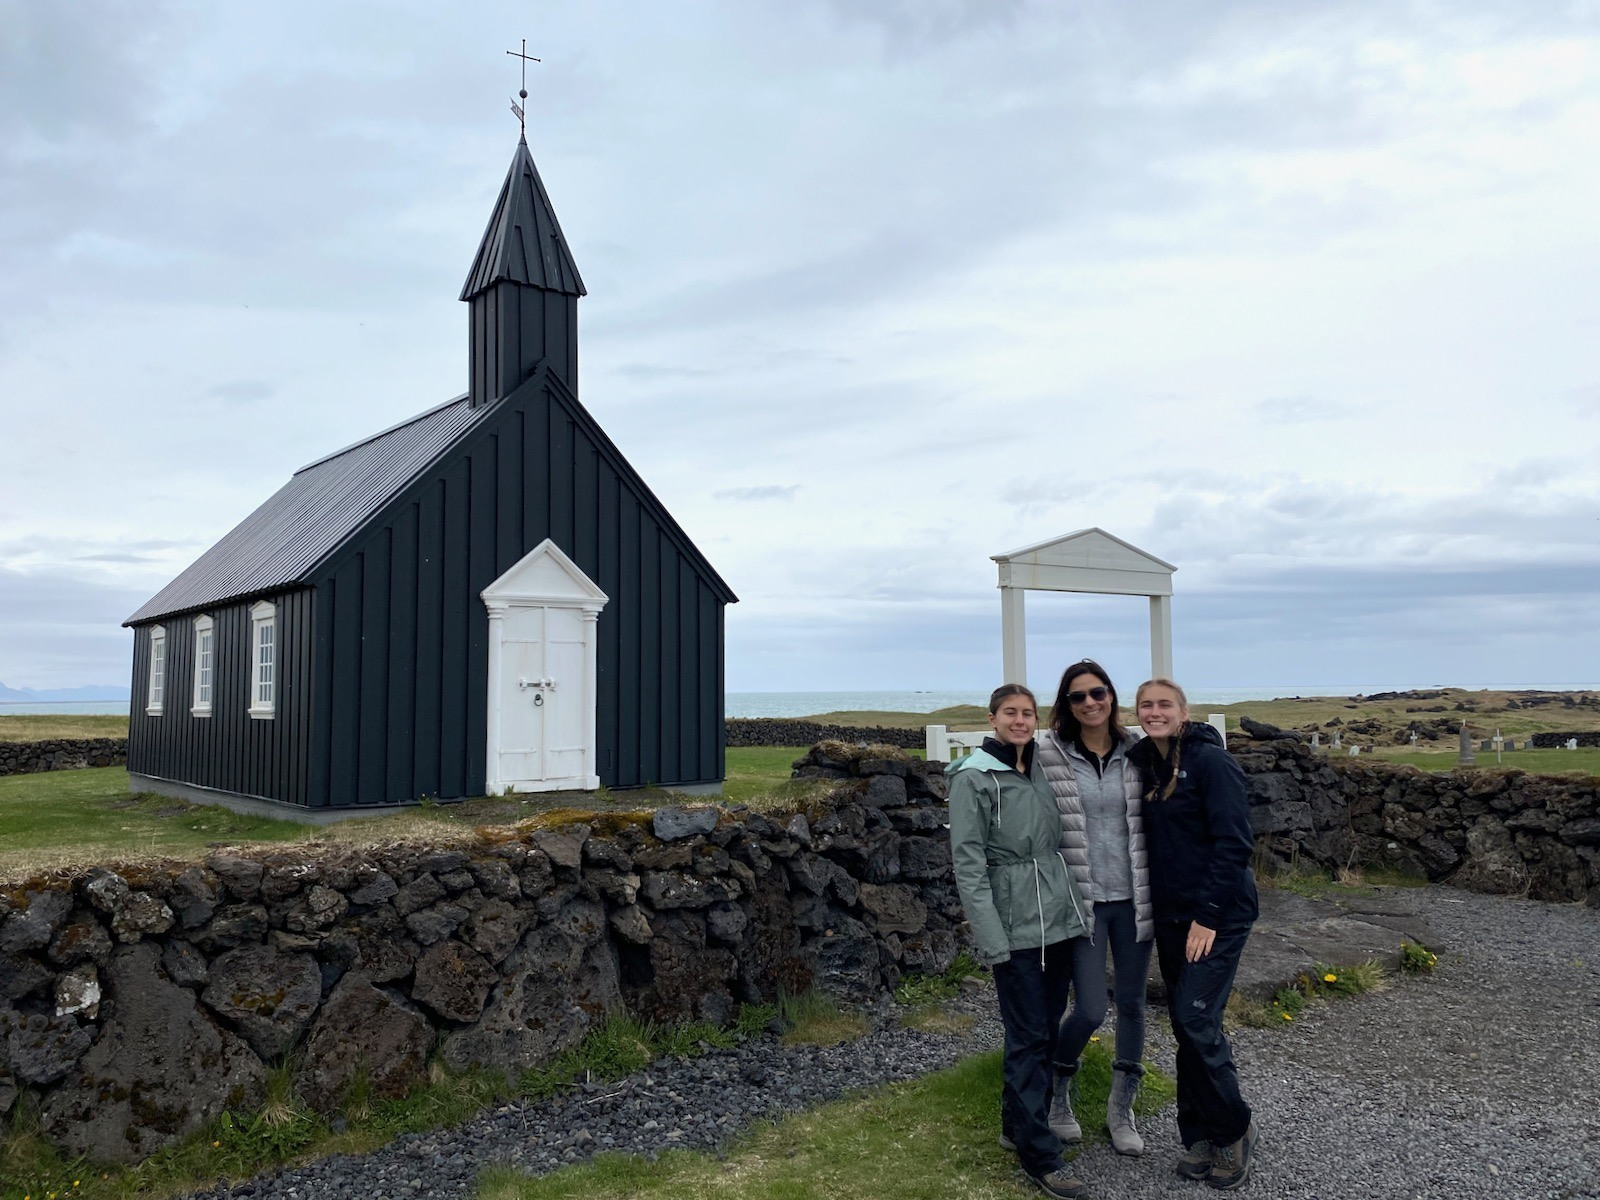 Mother and two daughters posing in front of a quaint little church in Iceland.